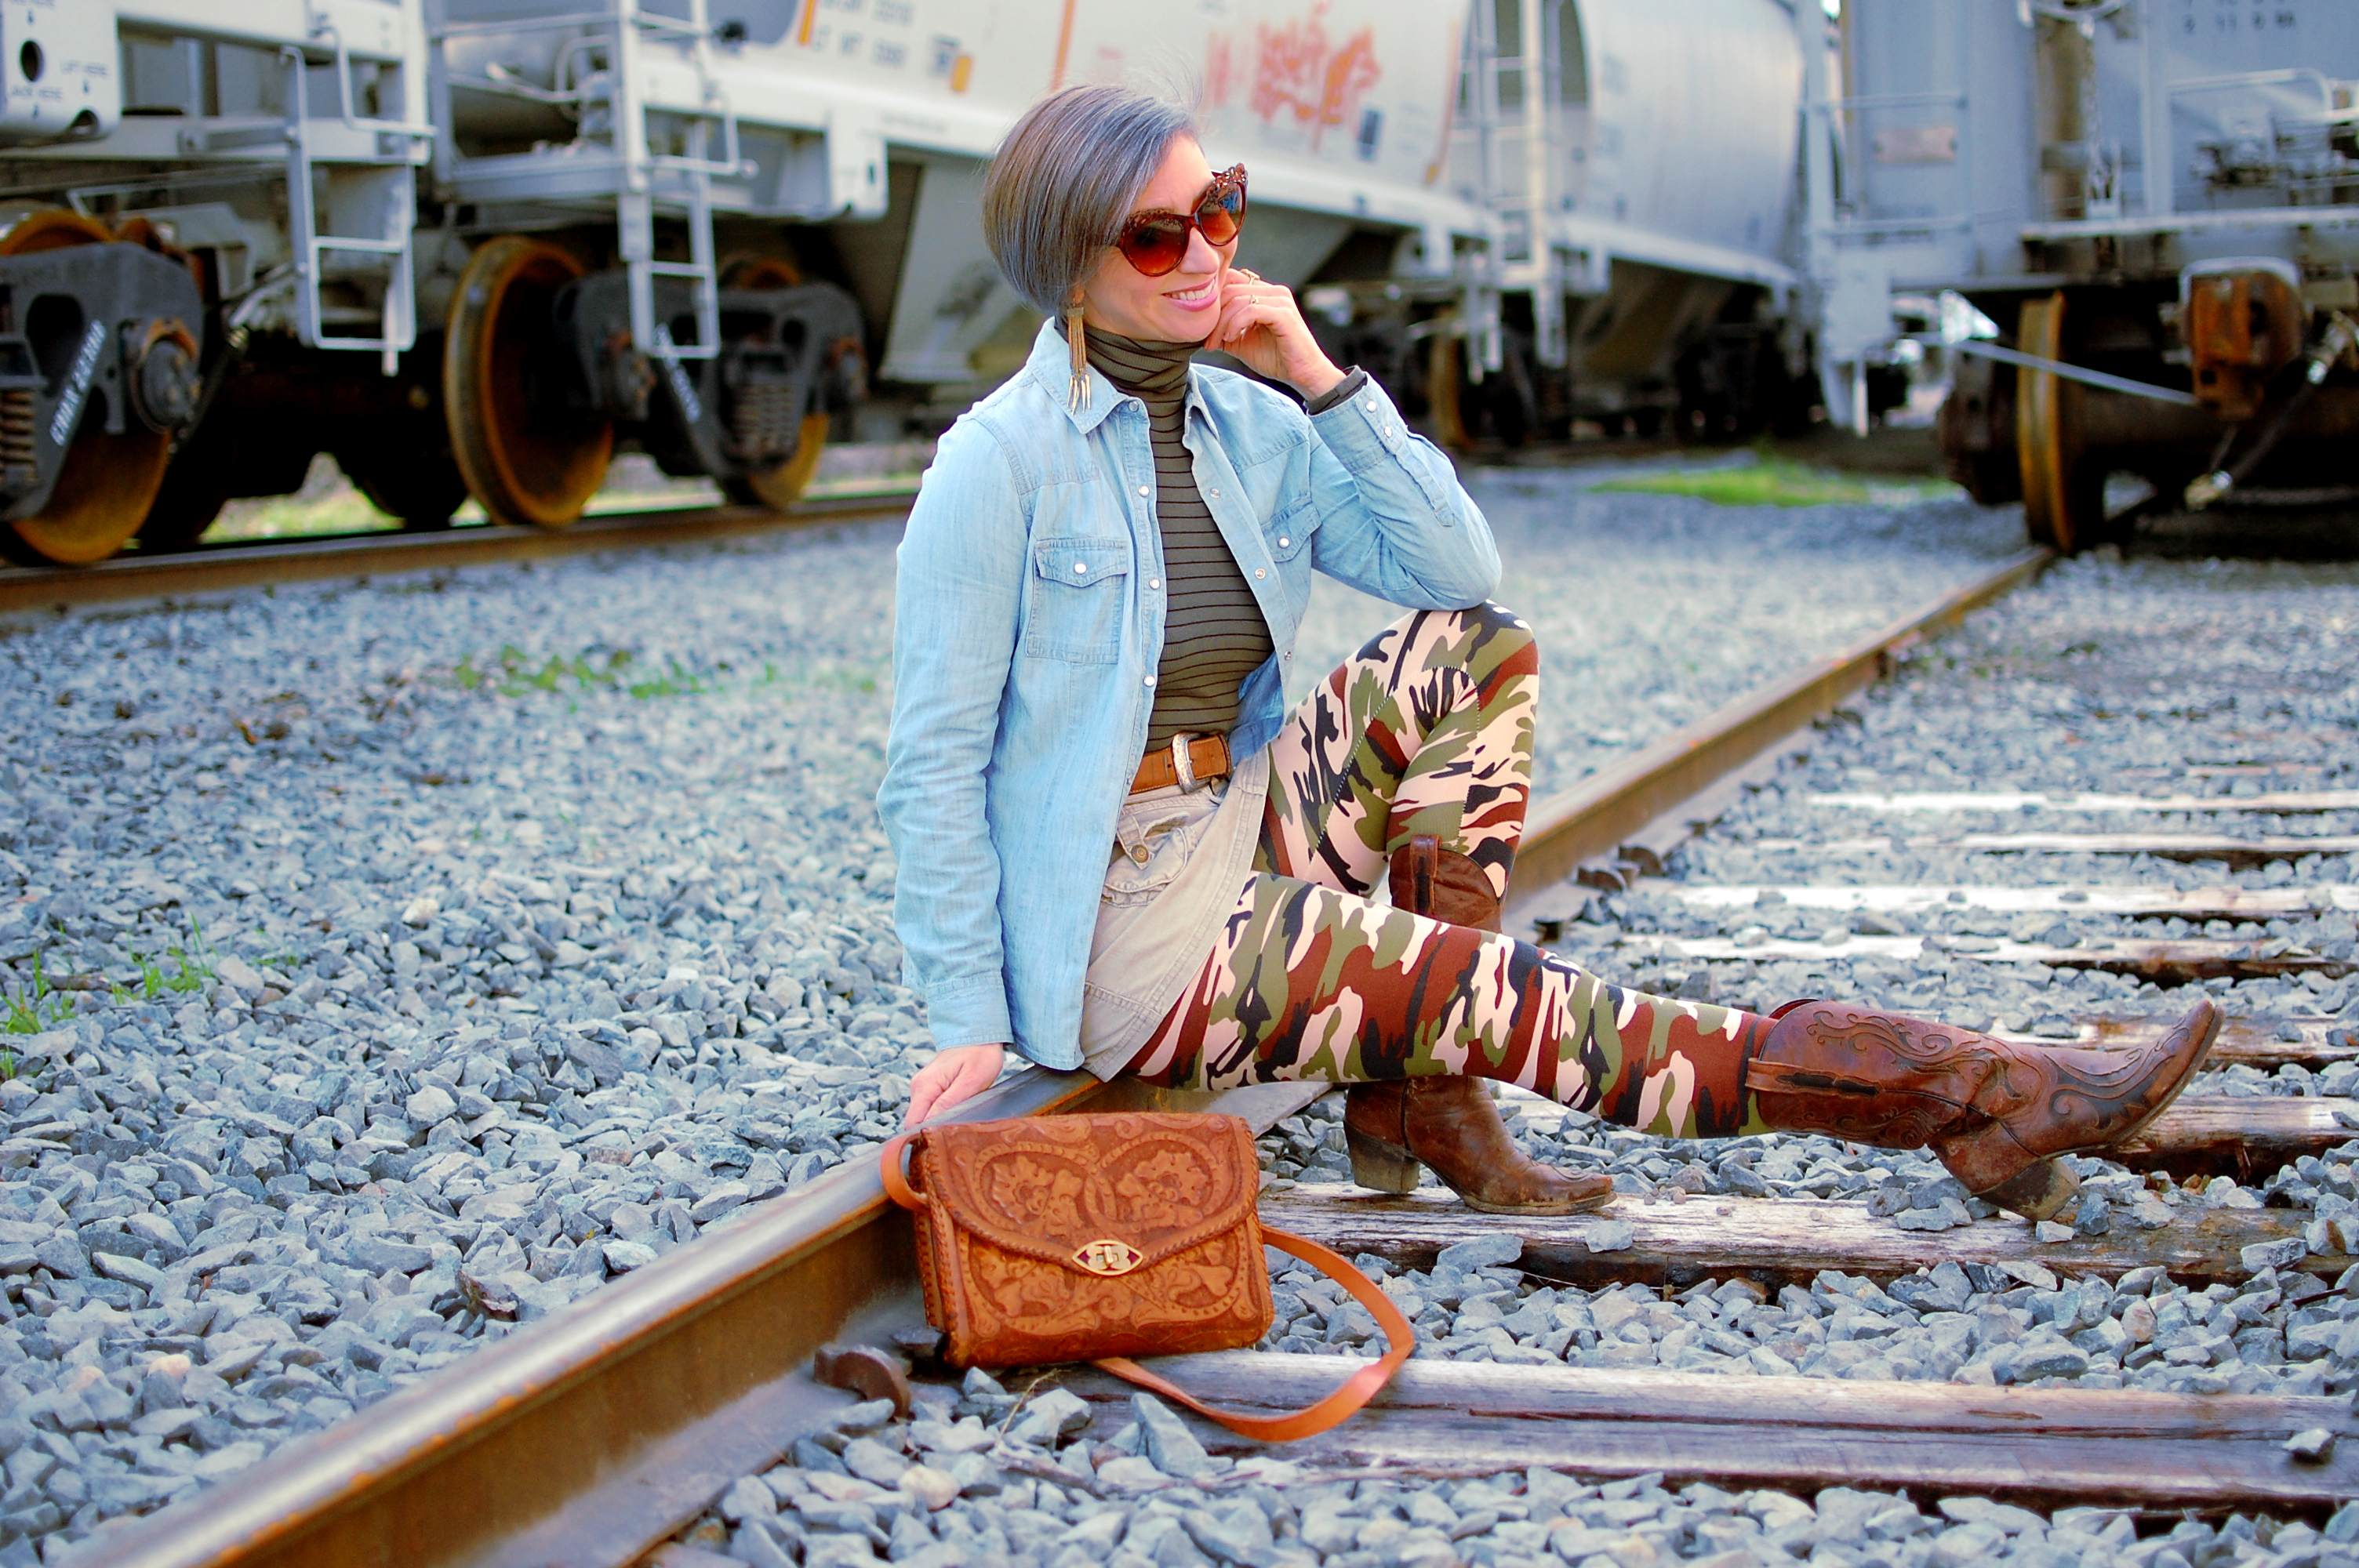 camo denim corduroy train tracks tooled leather bag ootd whatiwore2day